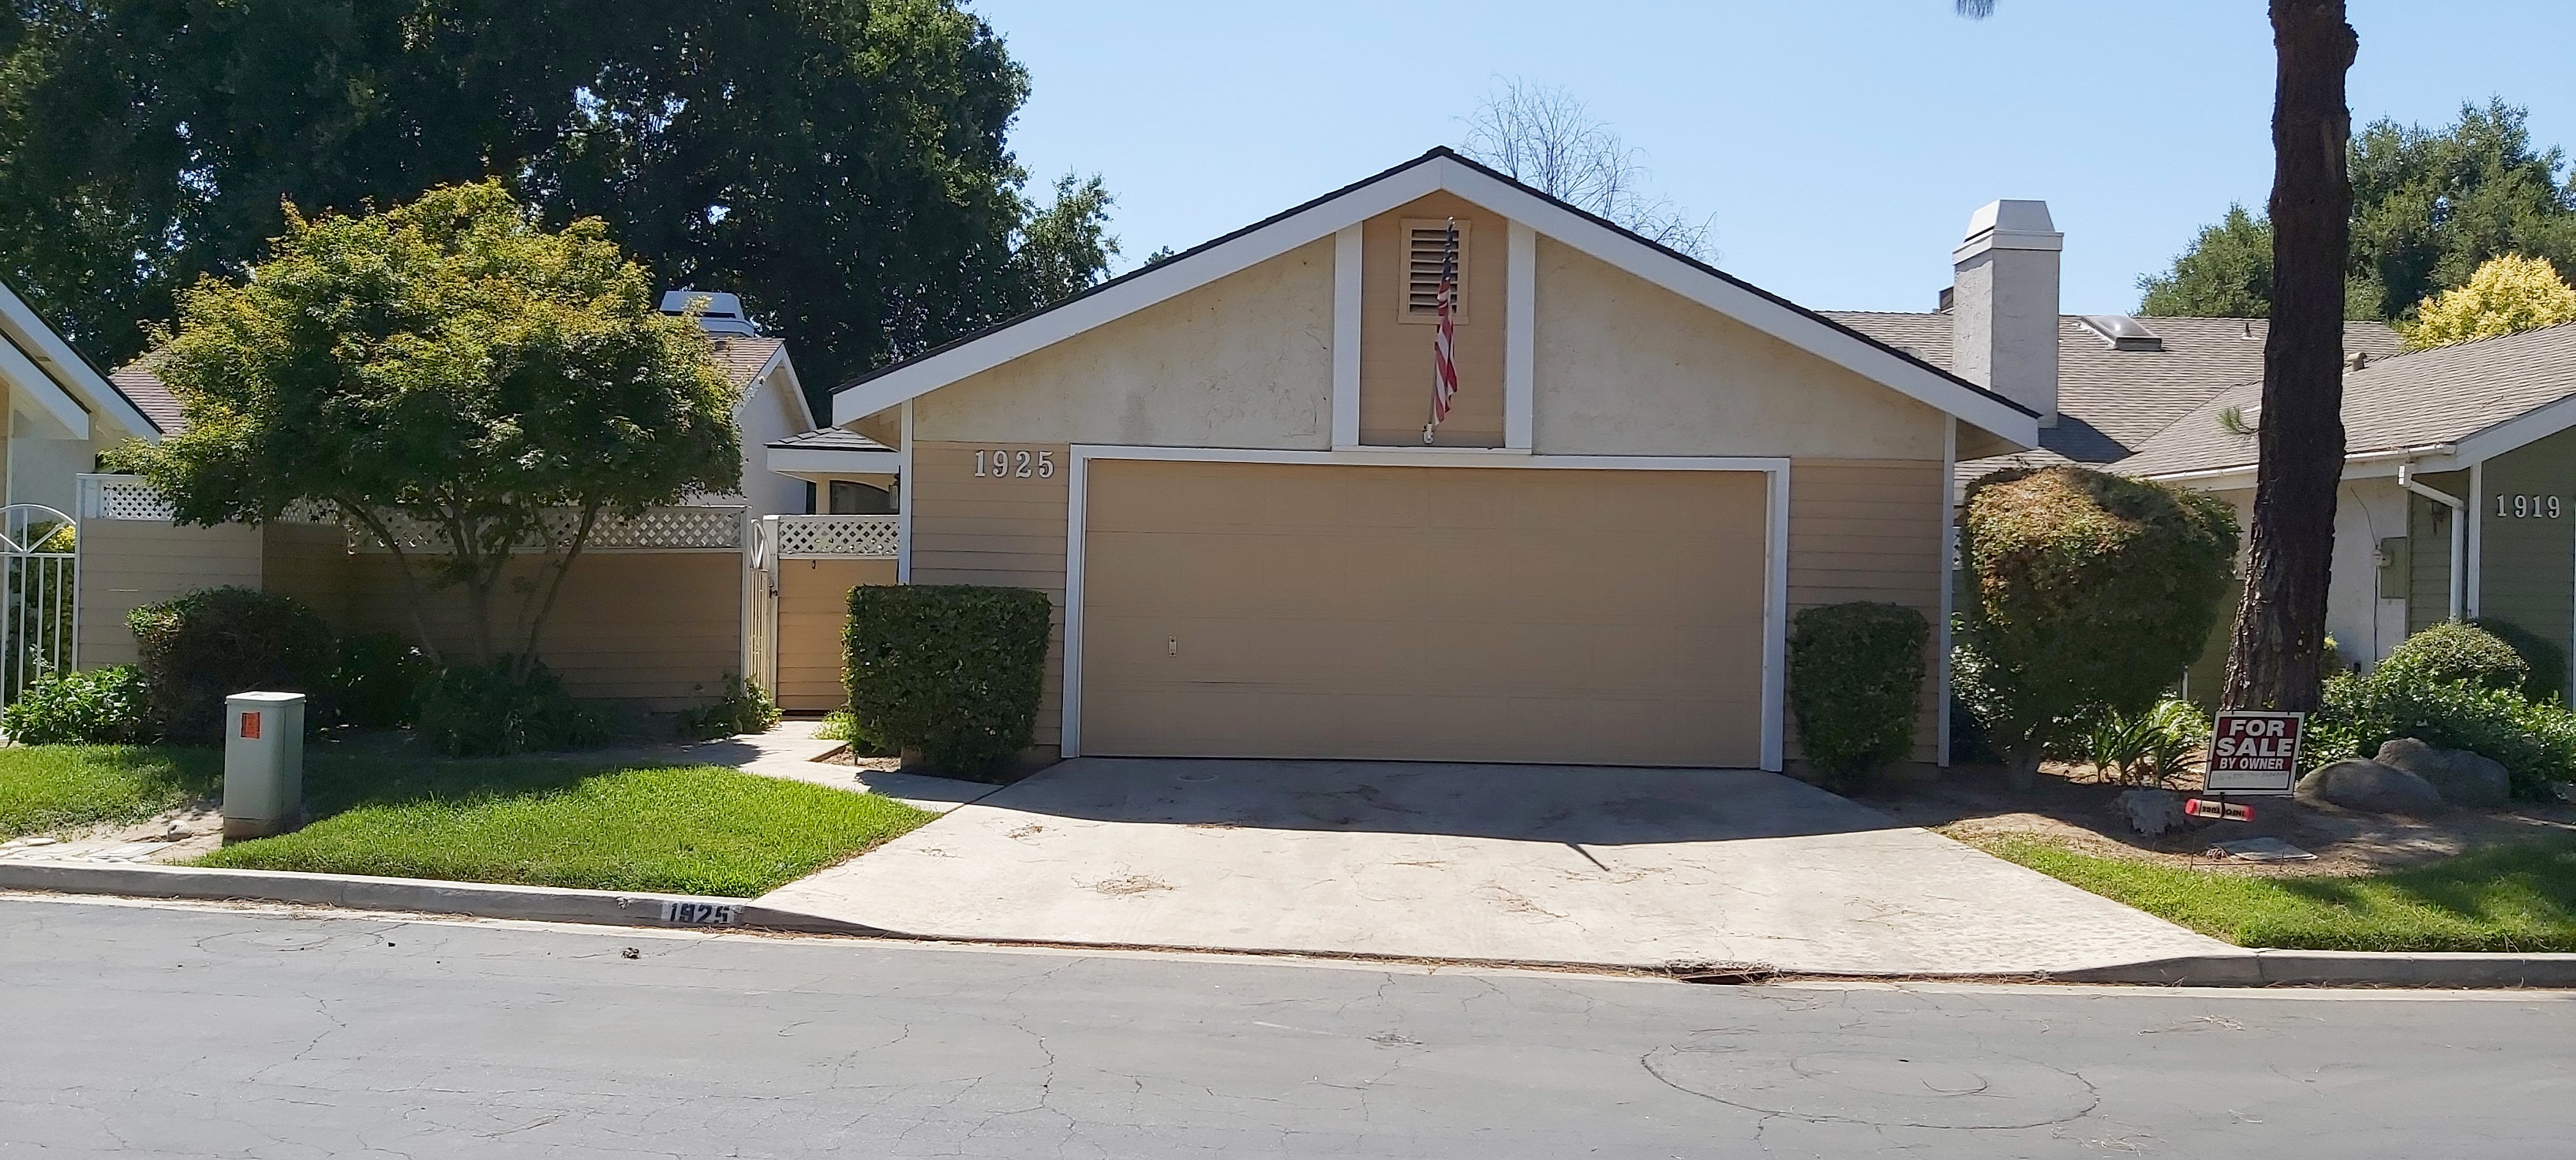 3 Bedrooms / 2 Bathrooms - Est. $1,774.00 / Month* for rent in Visalia, CA